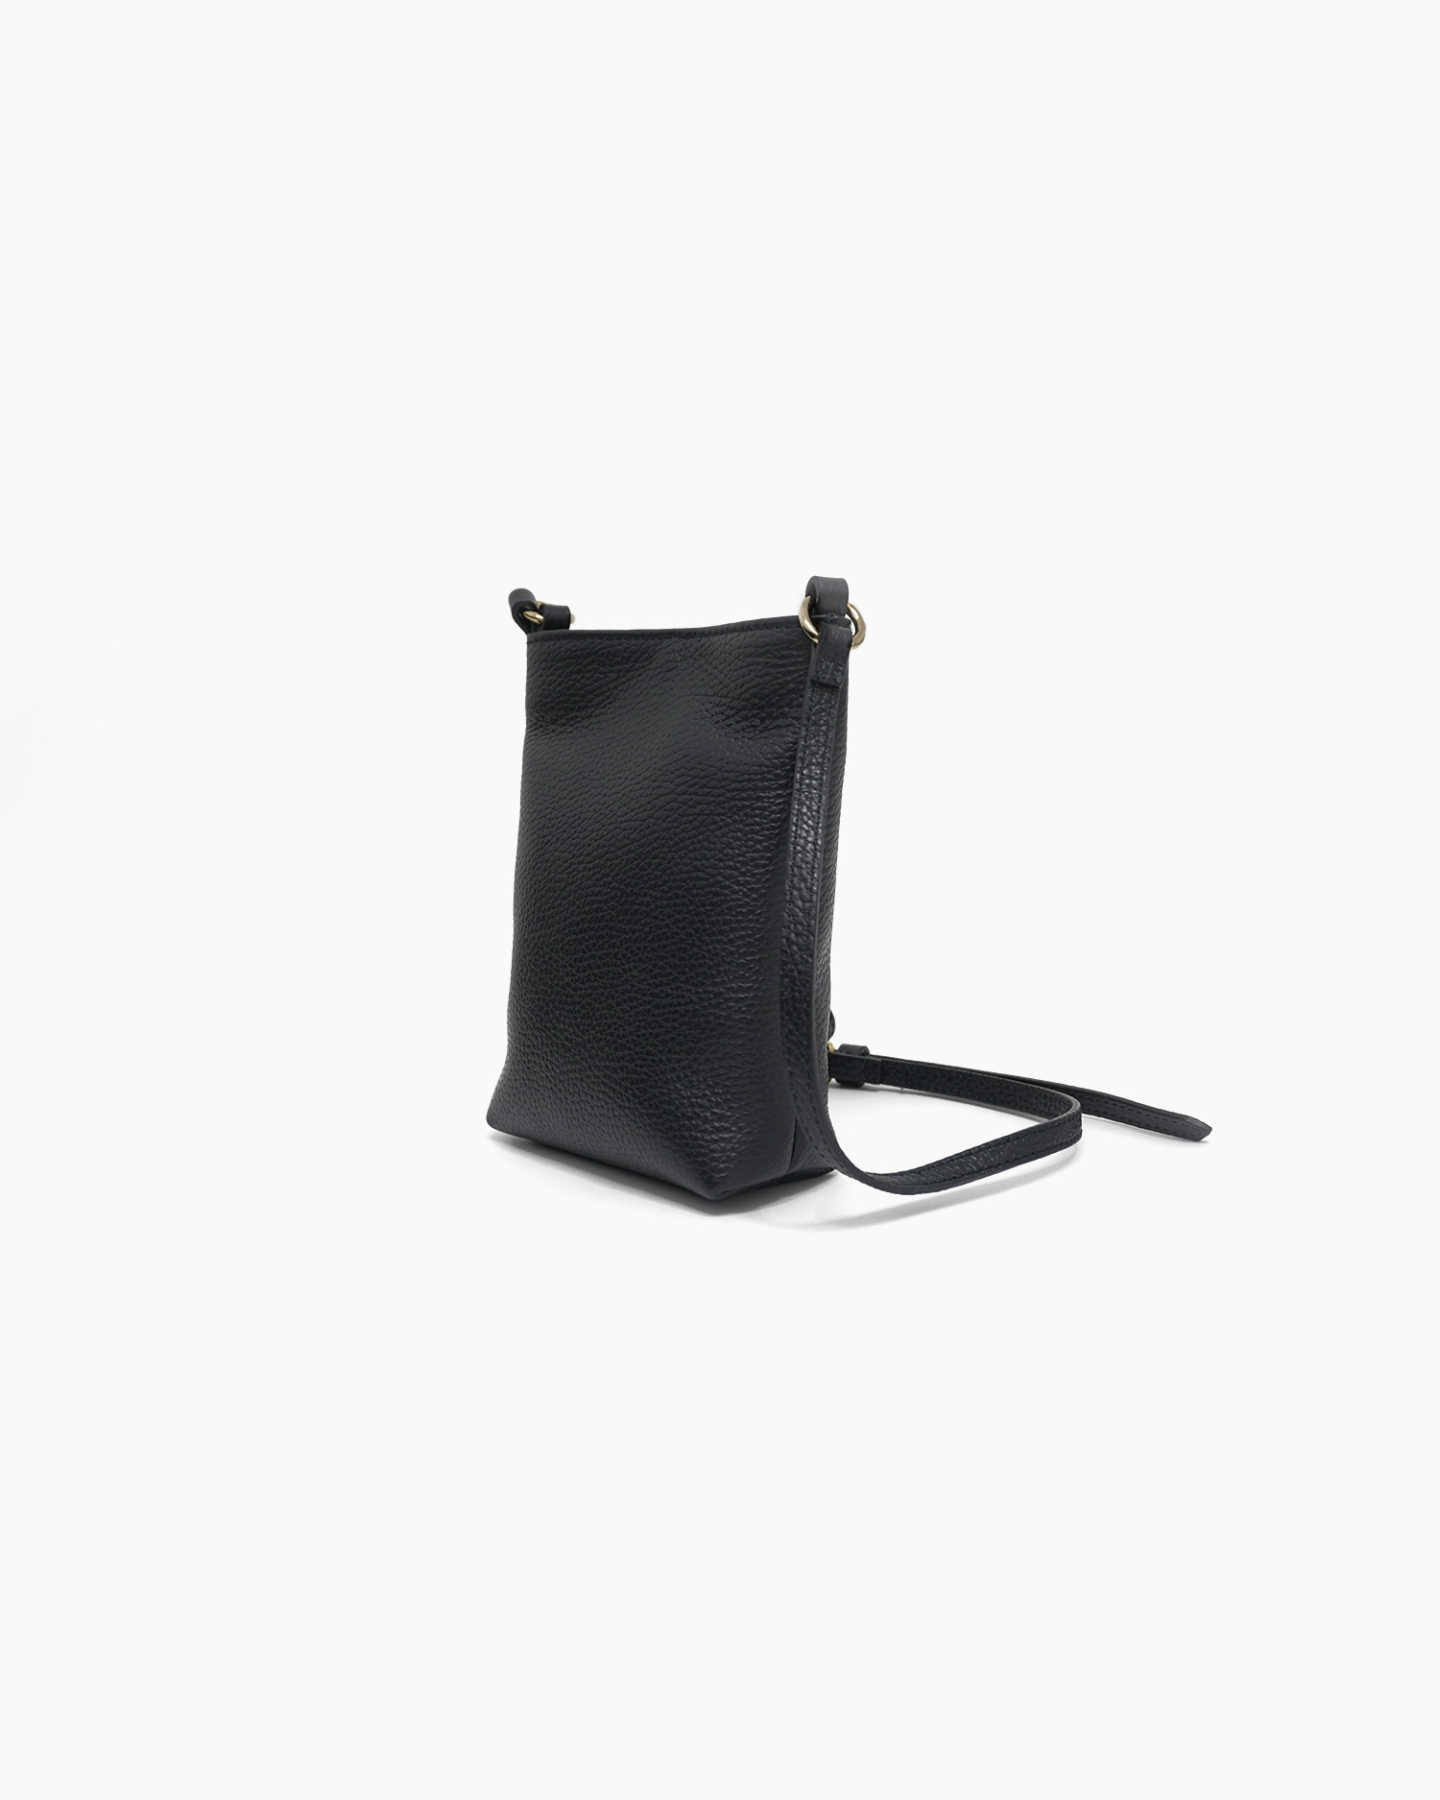 Italian Pebbled Leather Phone Crossbody - Black - 7